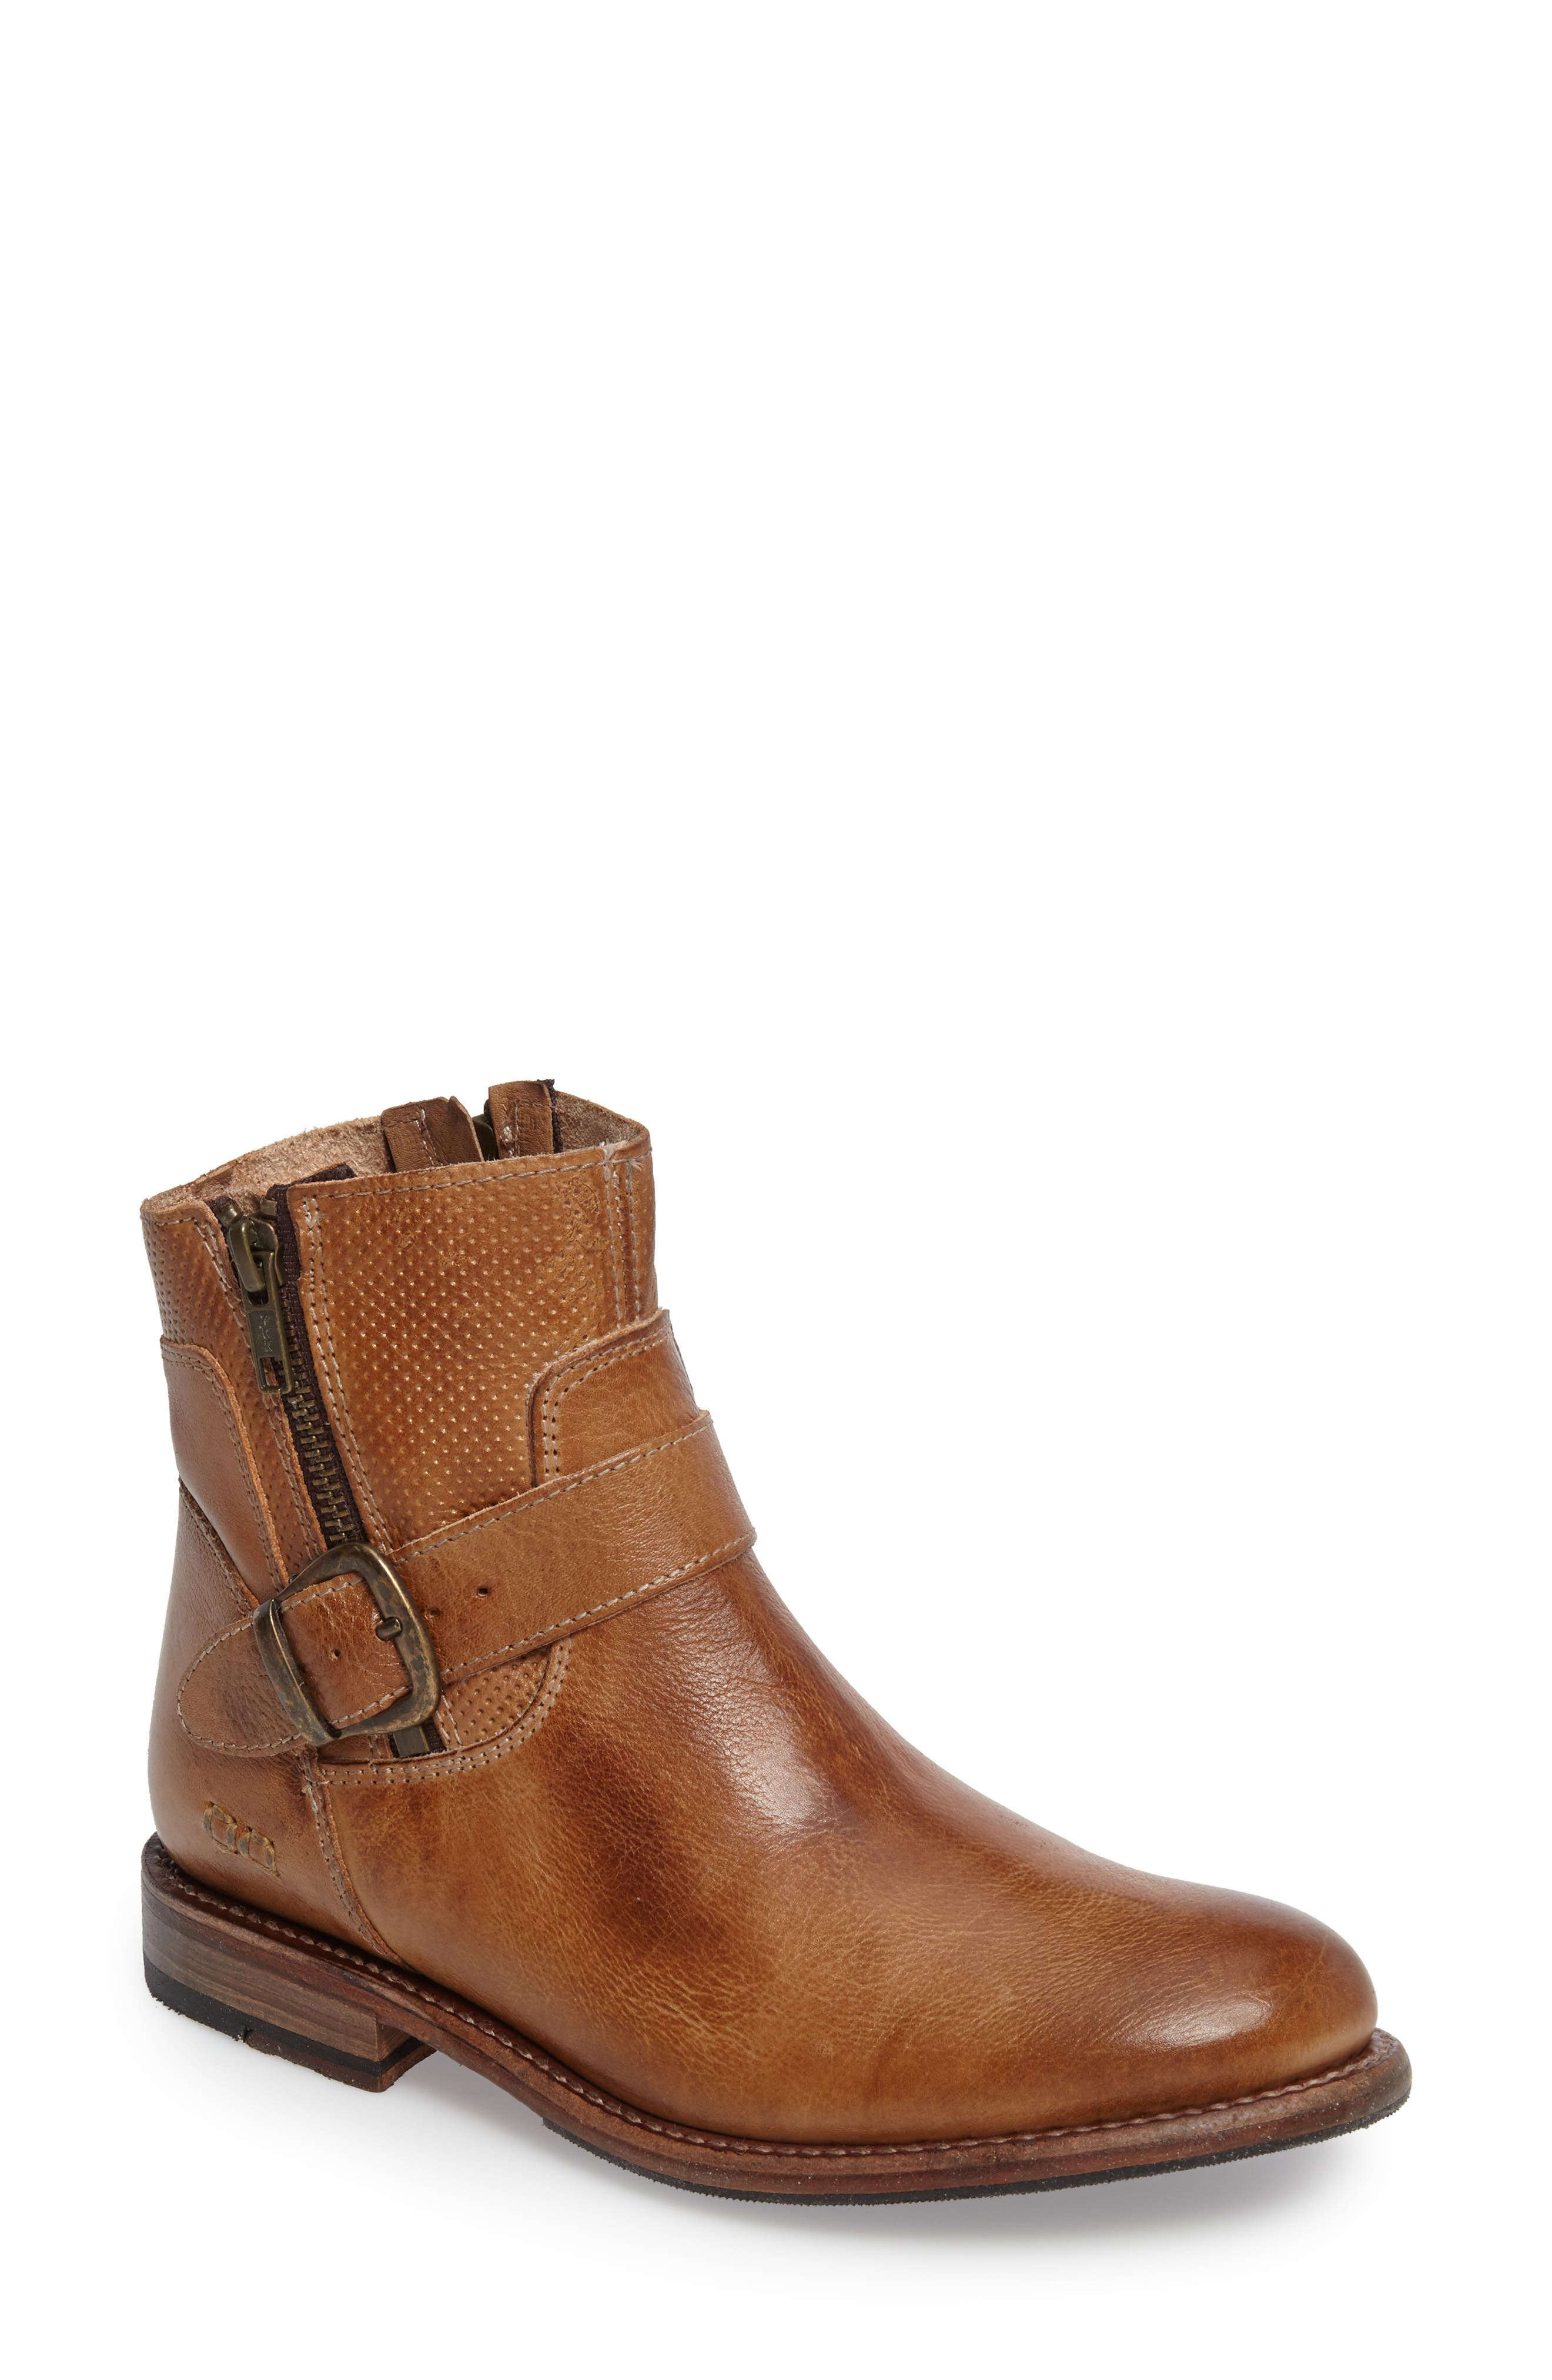 Becca Buckle Boot,                         Main,                         color, Tan Rustic Leather